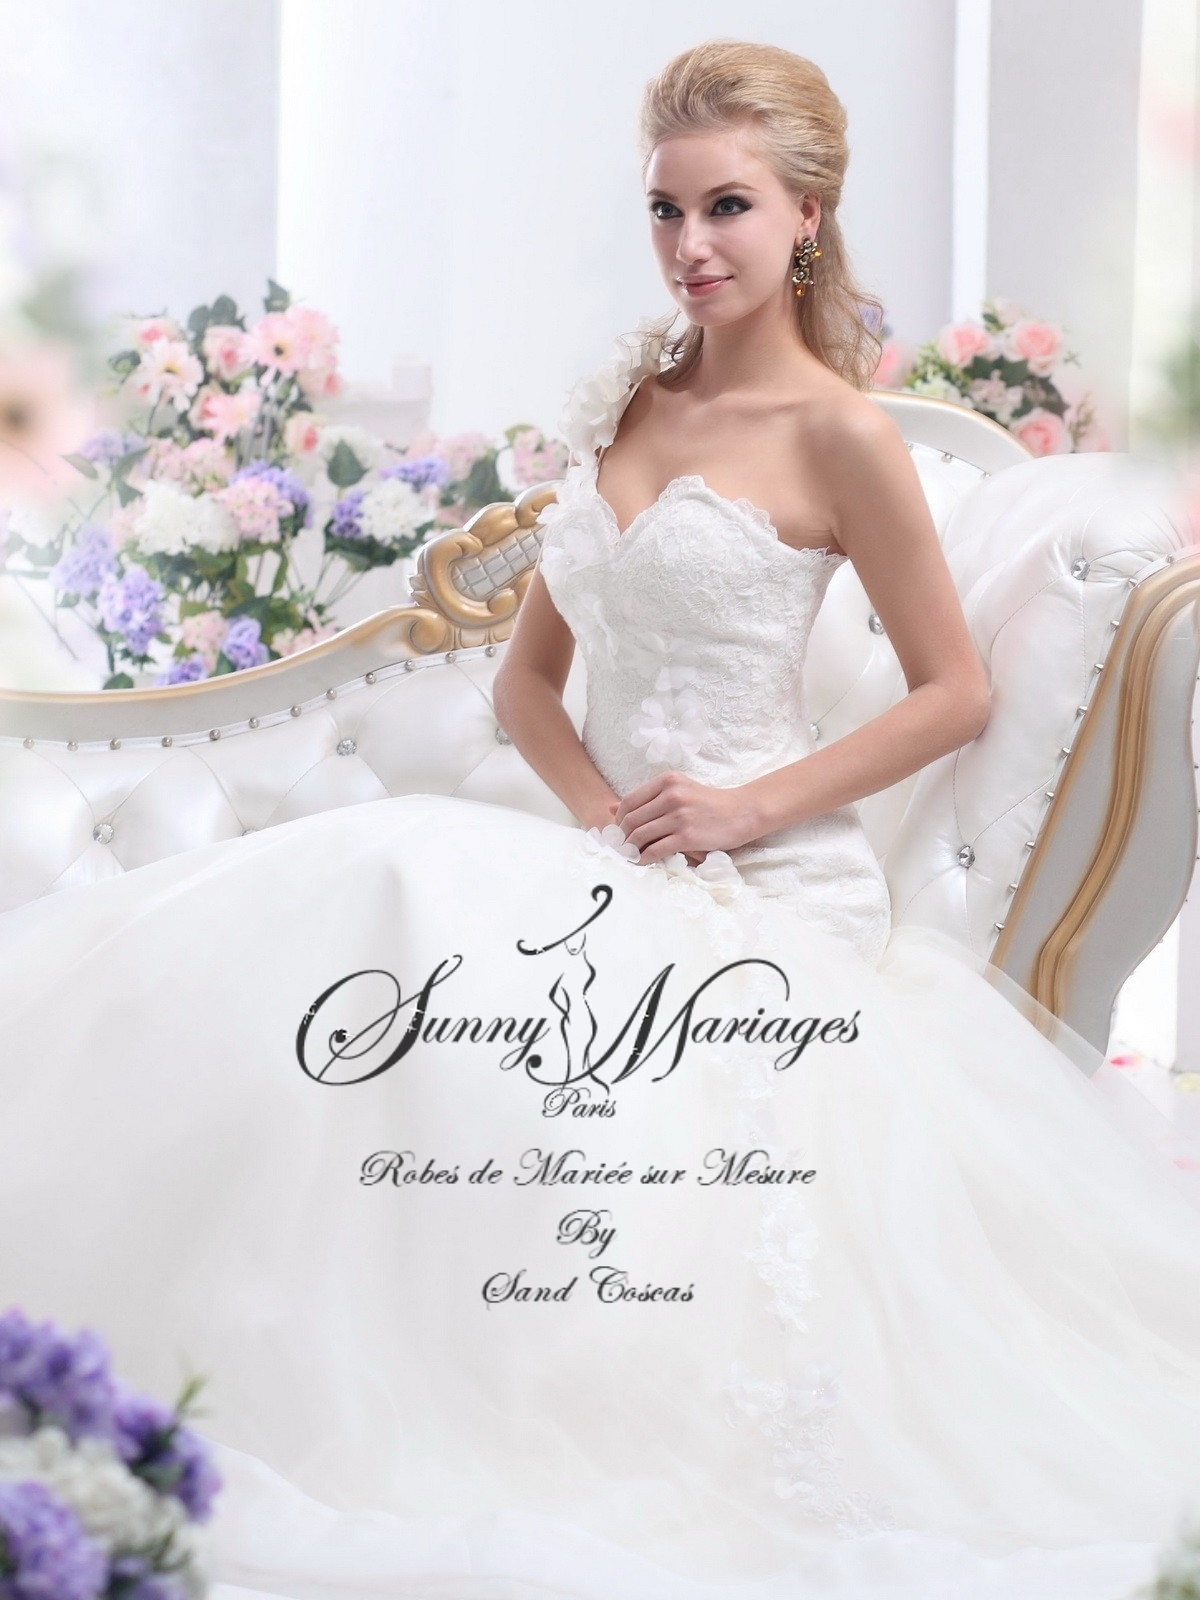 robe de mariage bustier dentelle et tulle cuope sirène SUNNY MARIAGES ...